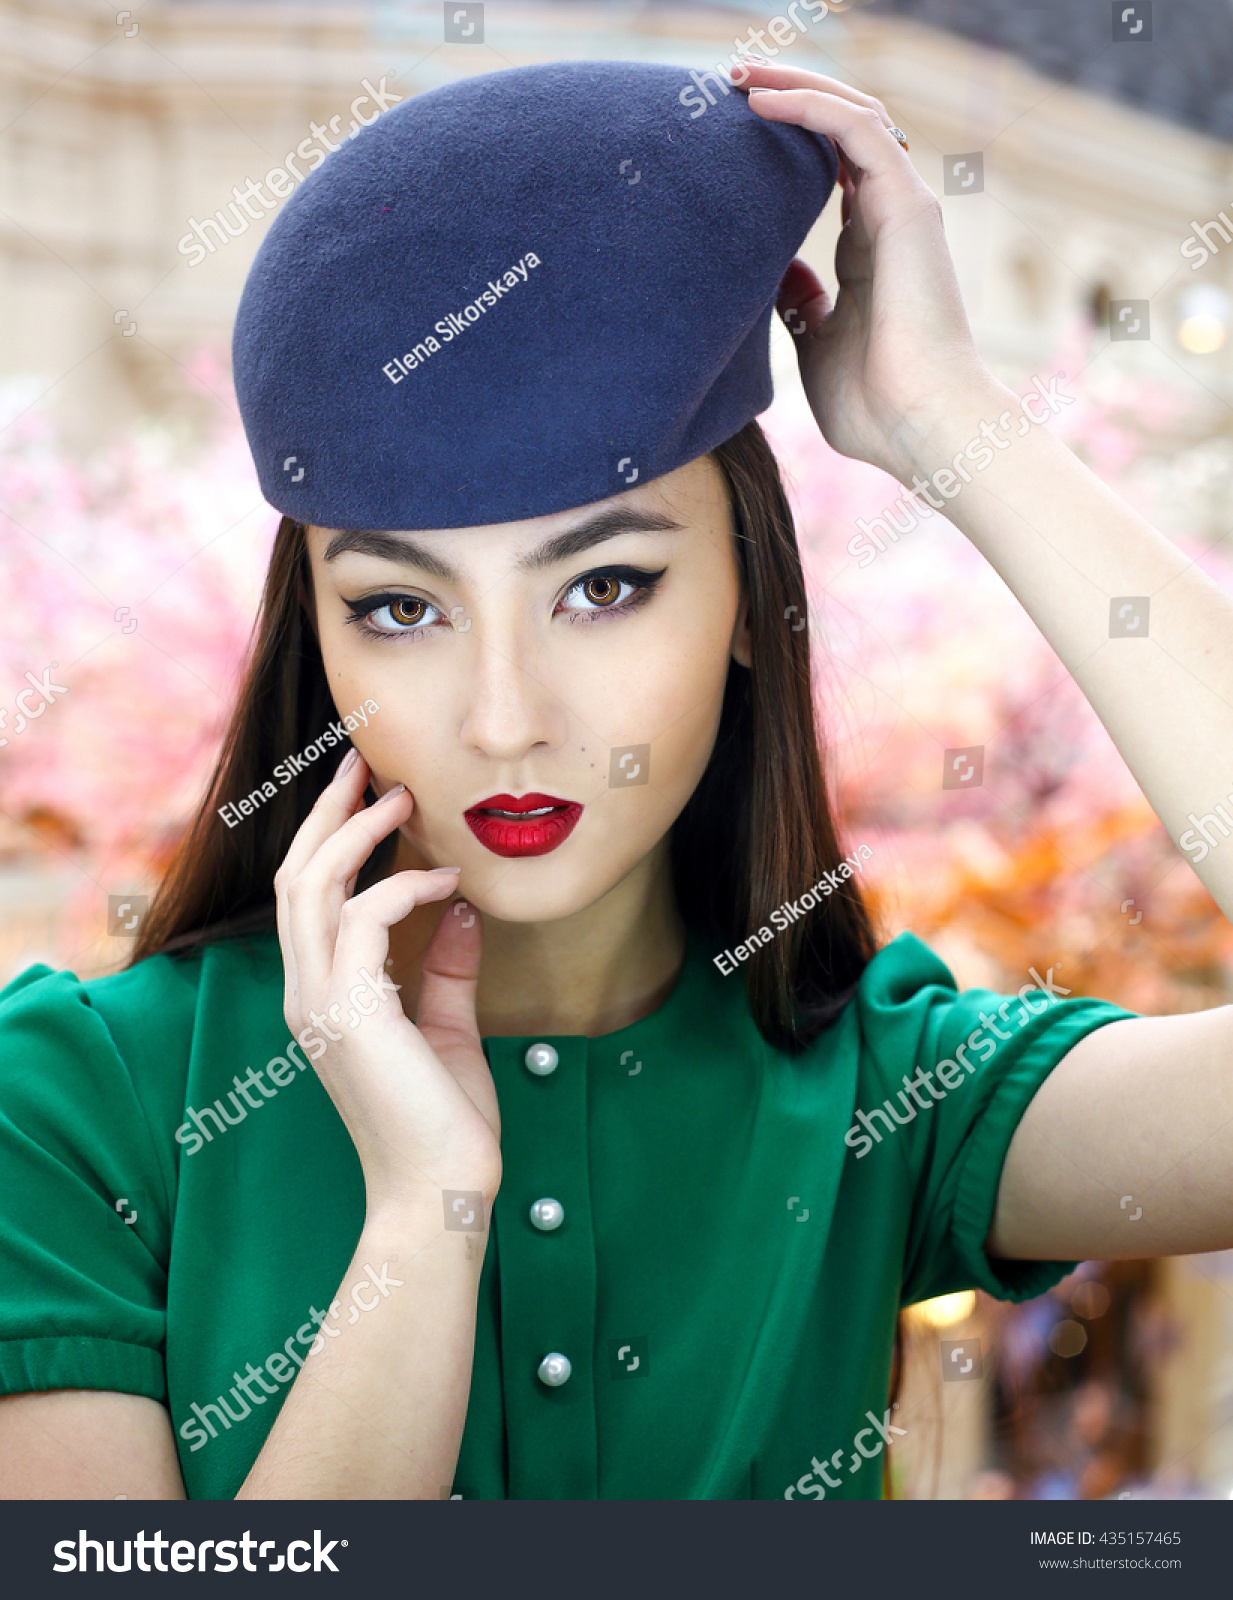 Girl stylish images with hat